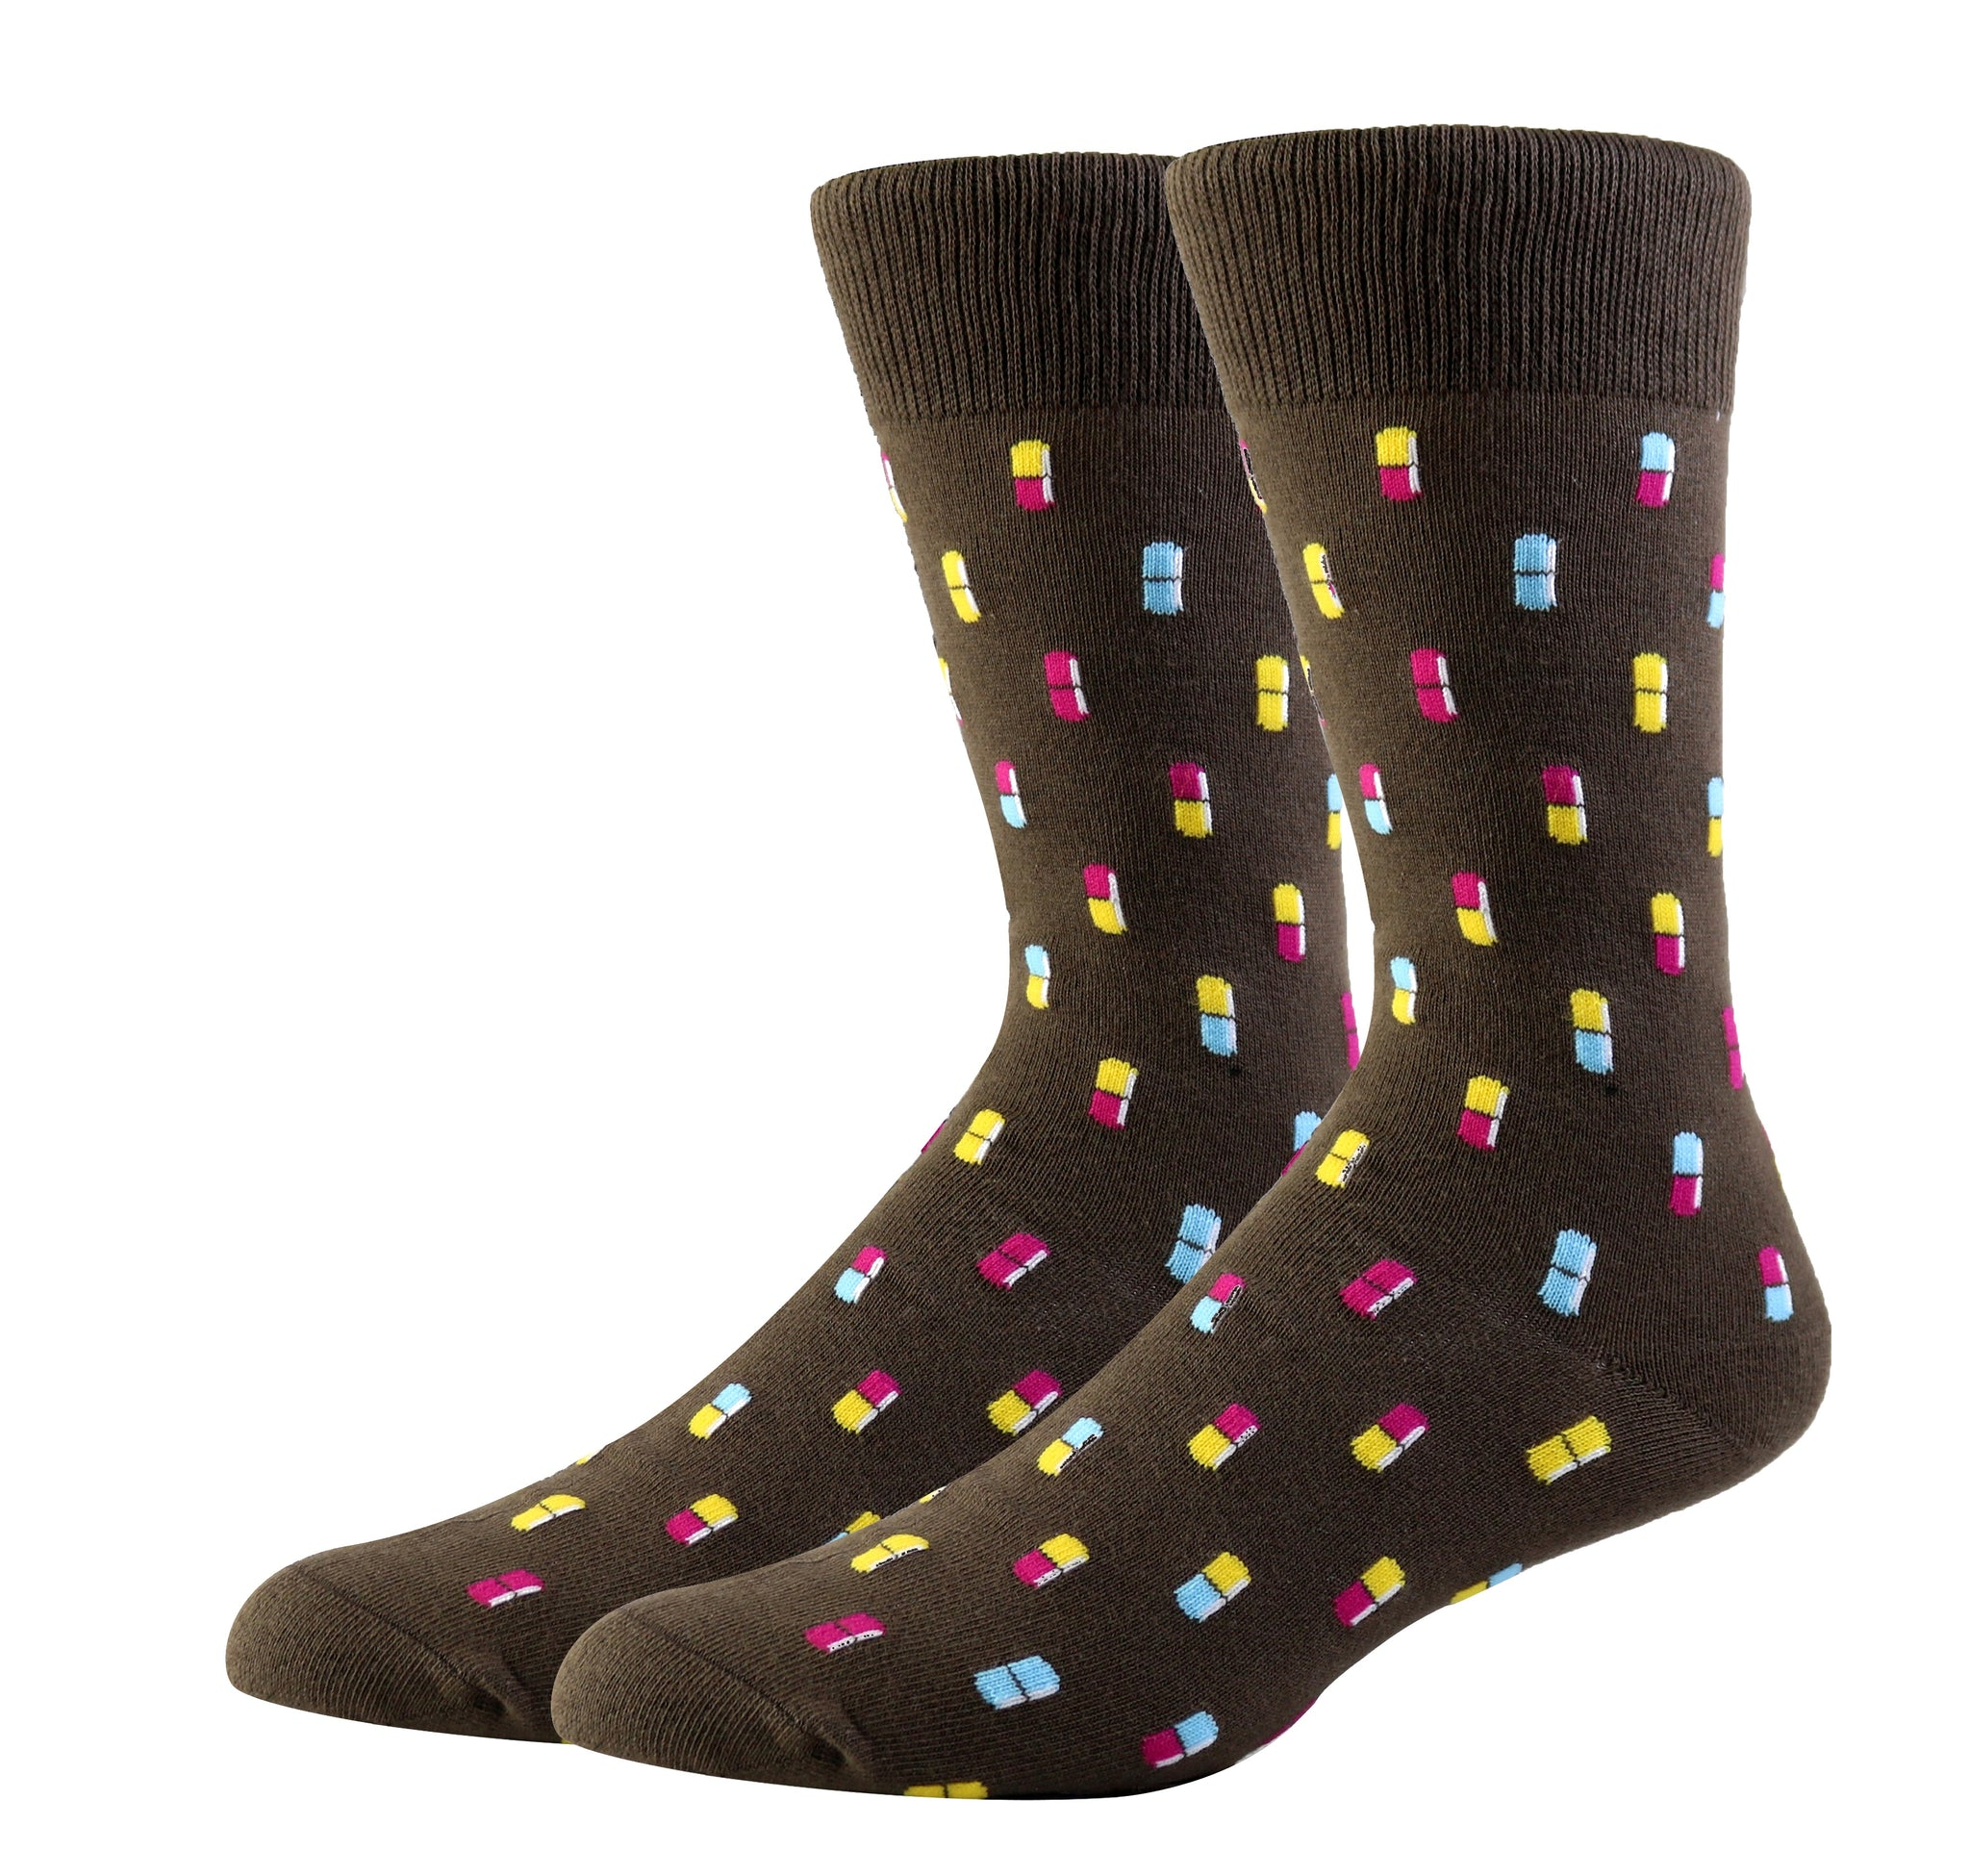 Dr. Mario Socks (Medium)